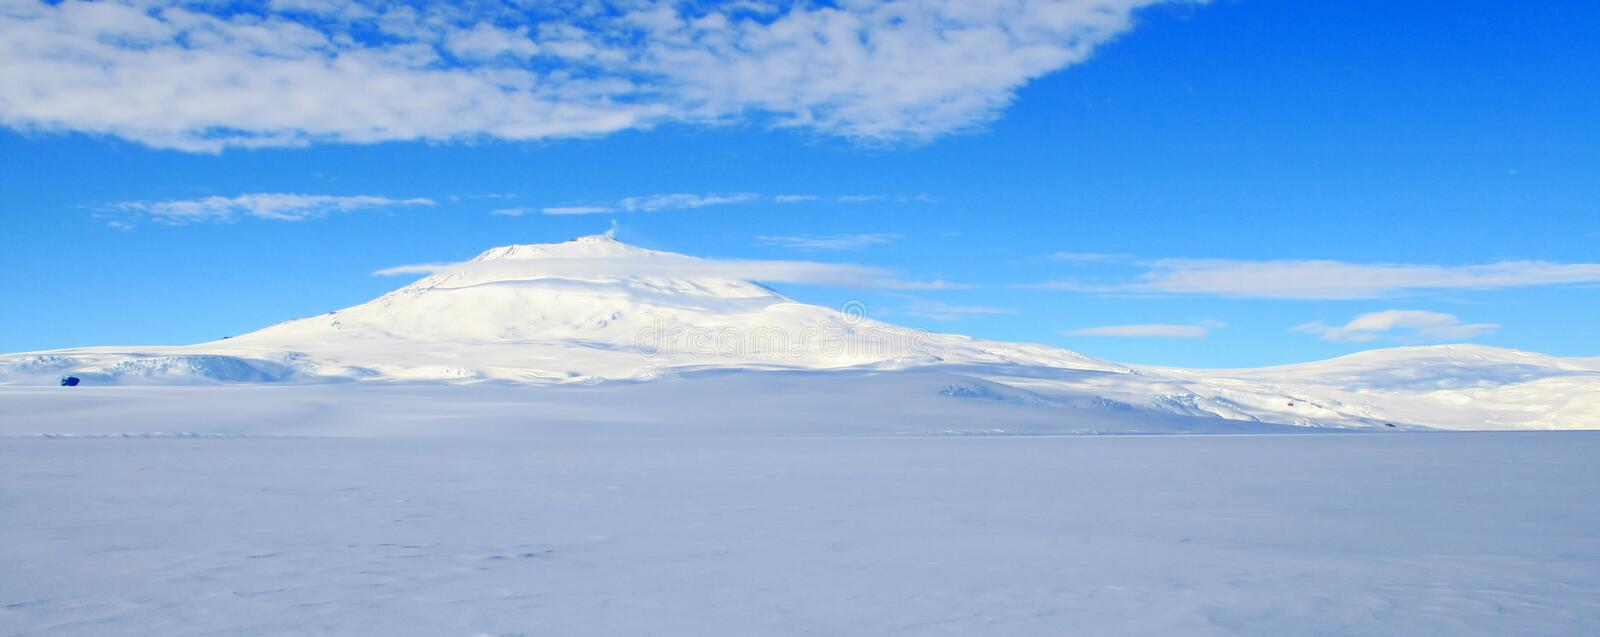 Download Mount Erebus, Antarctic Volcano Stock Photo - Image: 13857738